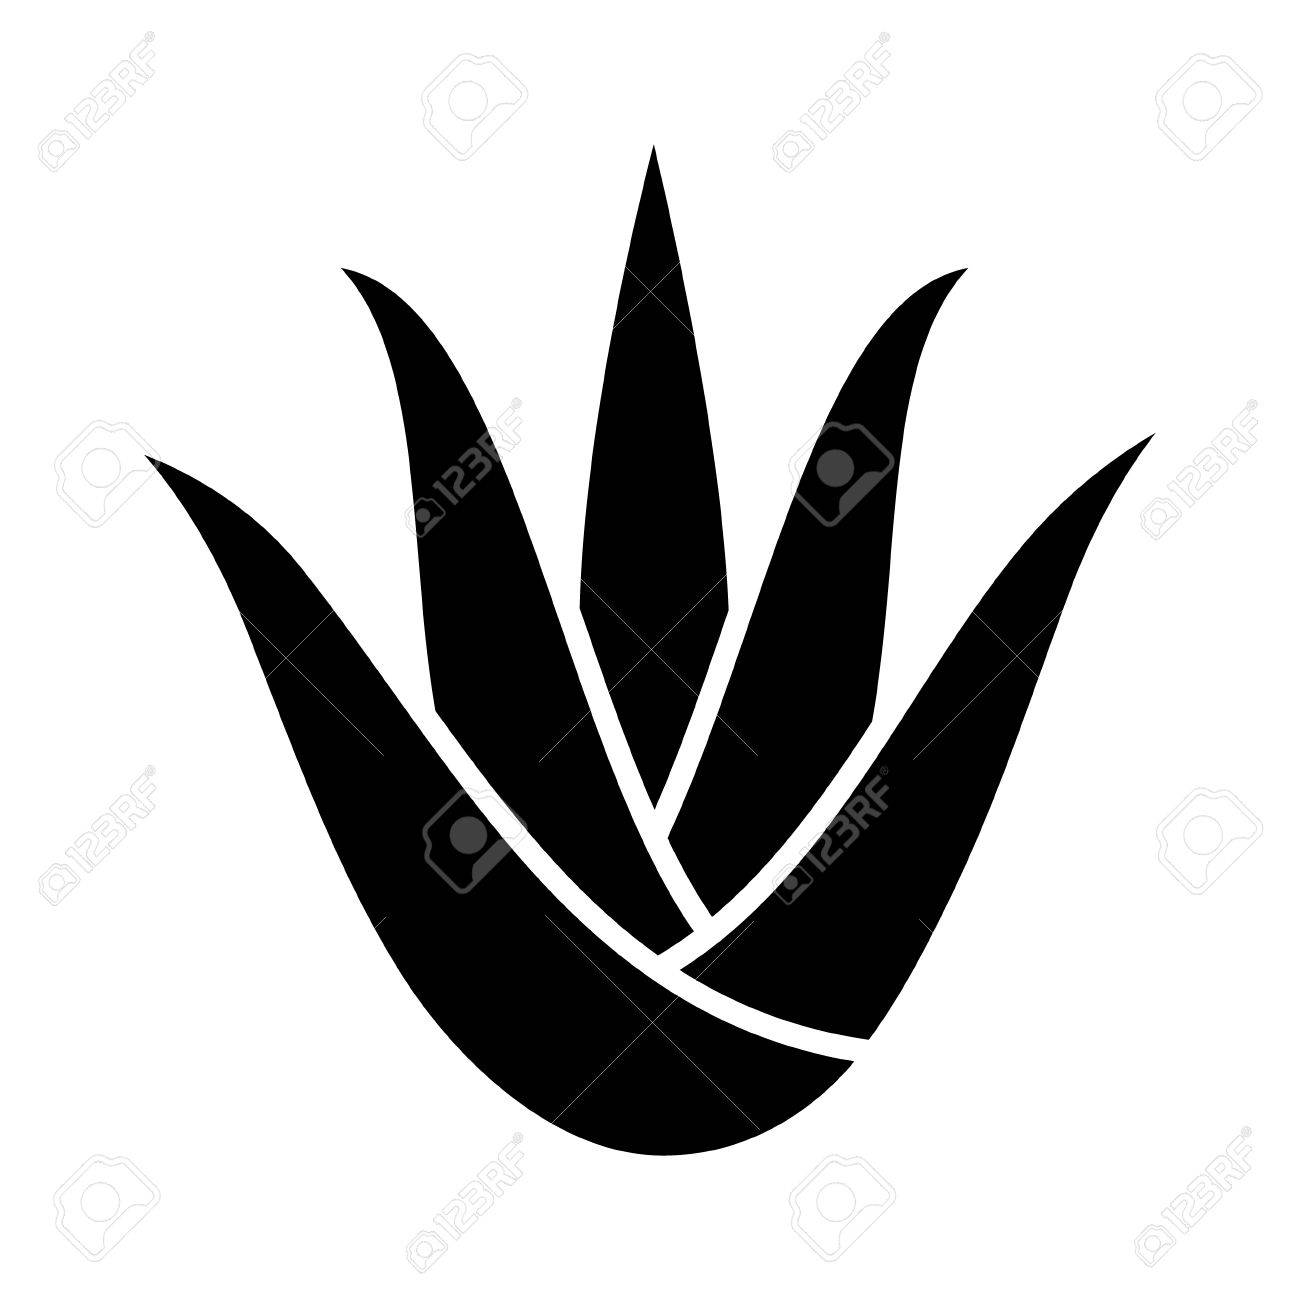 Aloe vera plant with leaves flat icon for apps and websites.